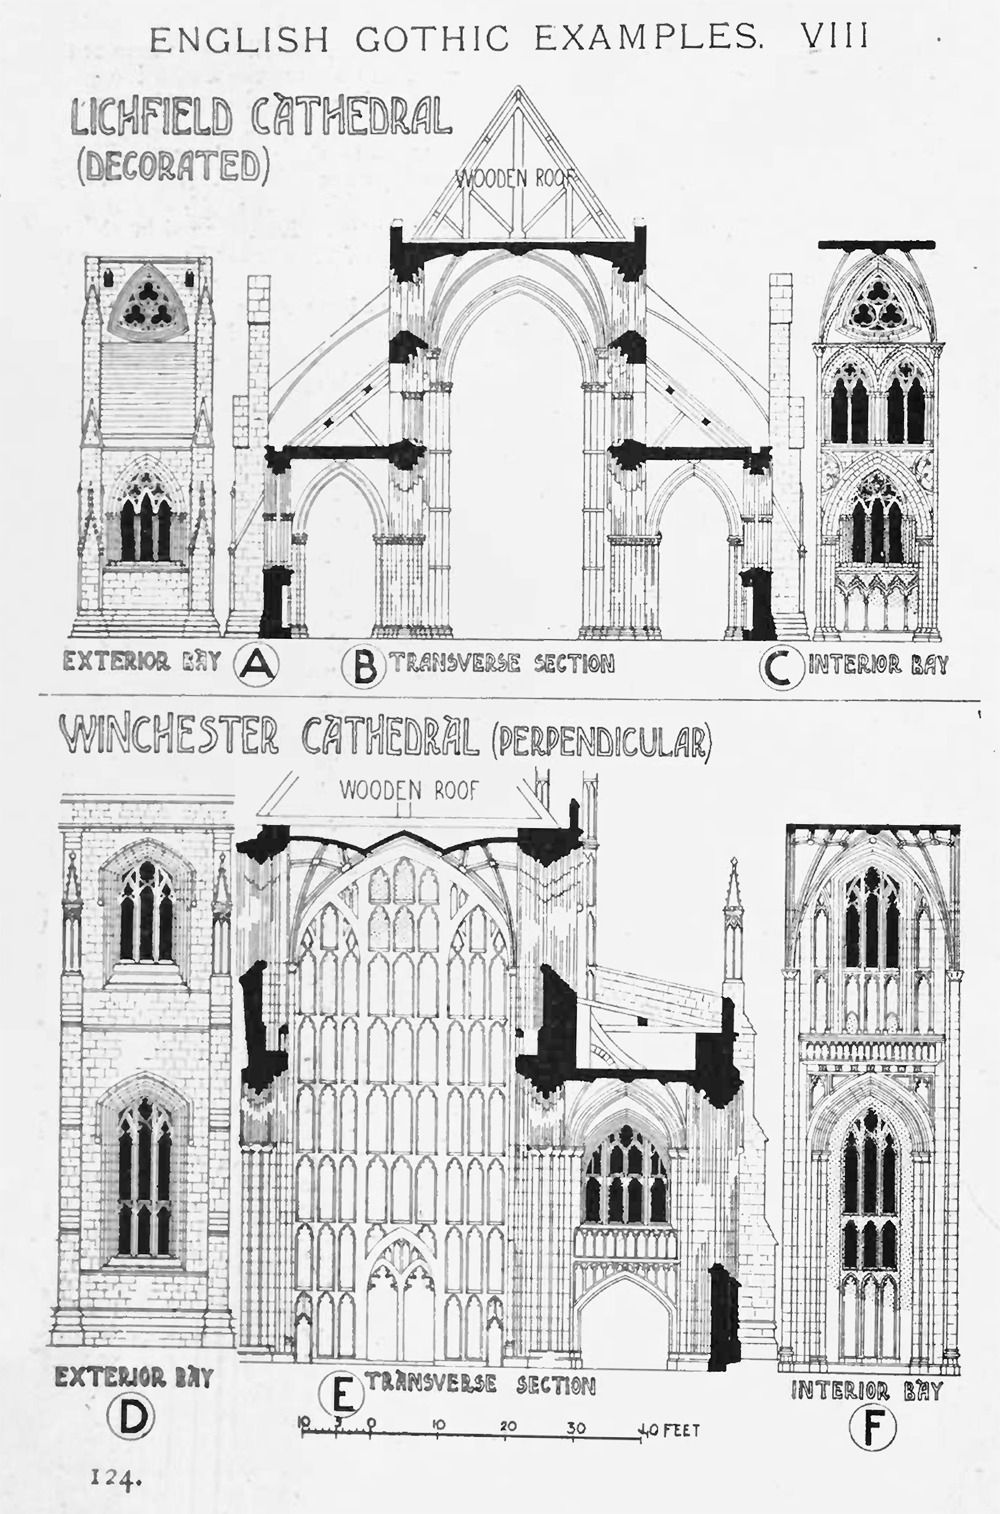 Elevations And Section In The Evolution Of English Gothic Cathedrals A History Of Architecture On Church Architecture European Architecture Gothic Architecture